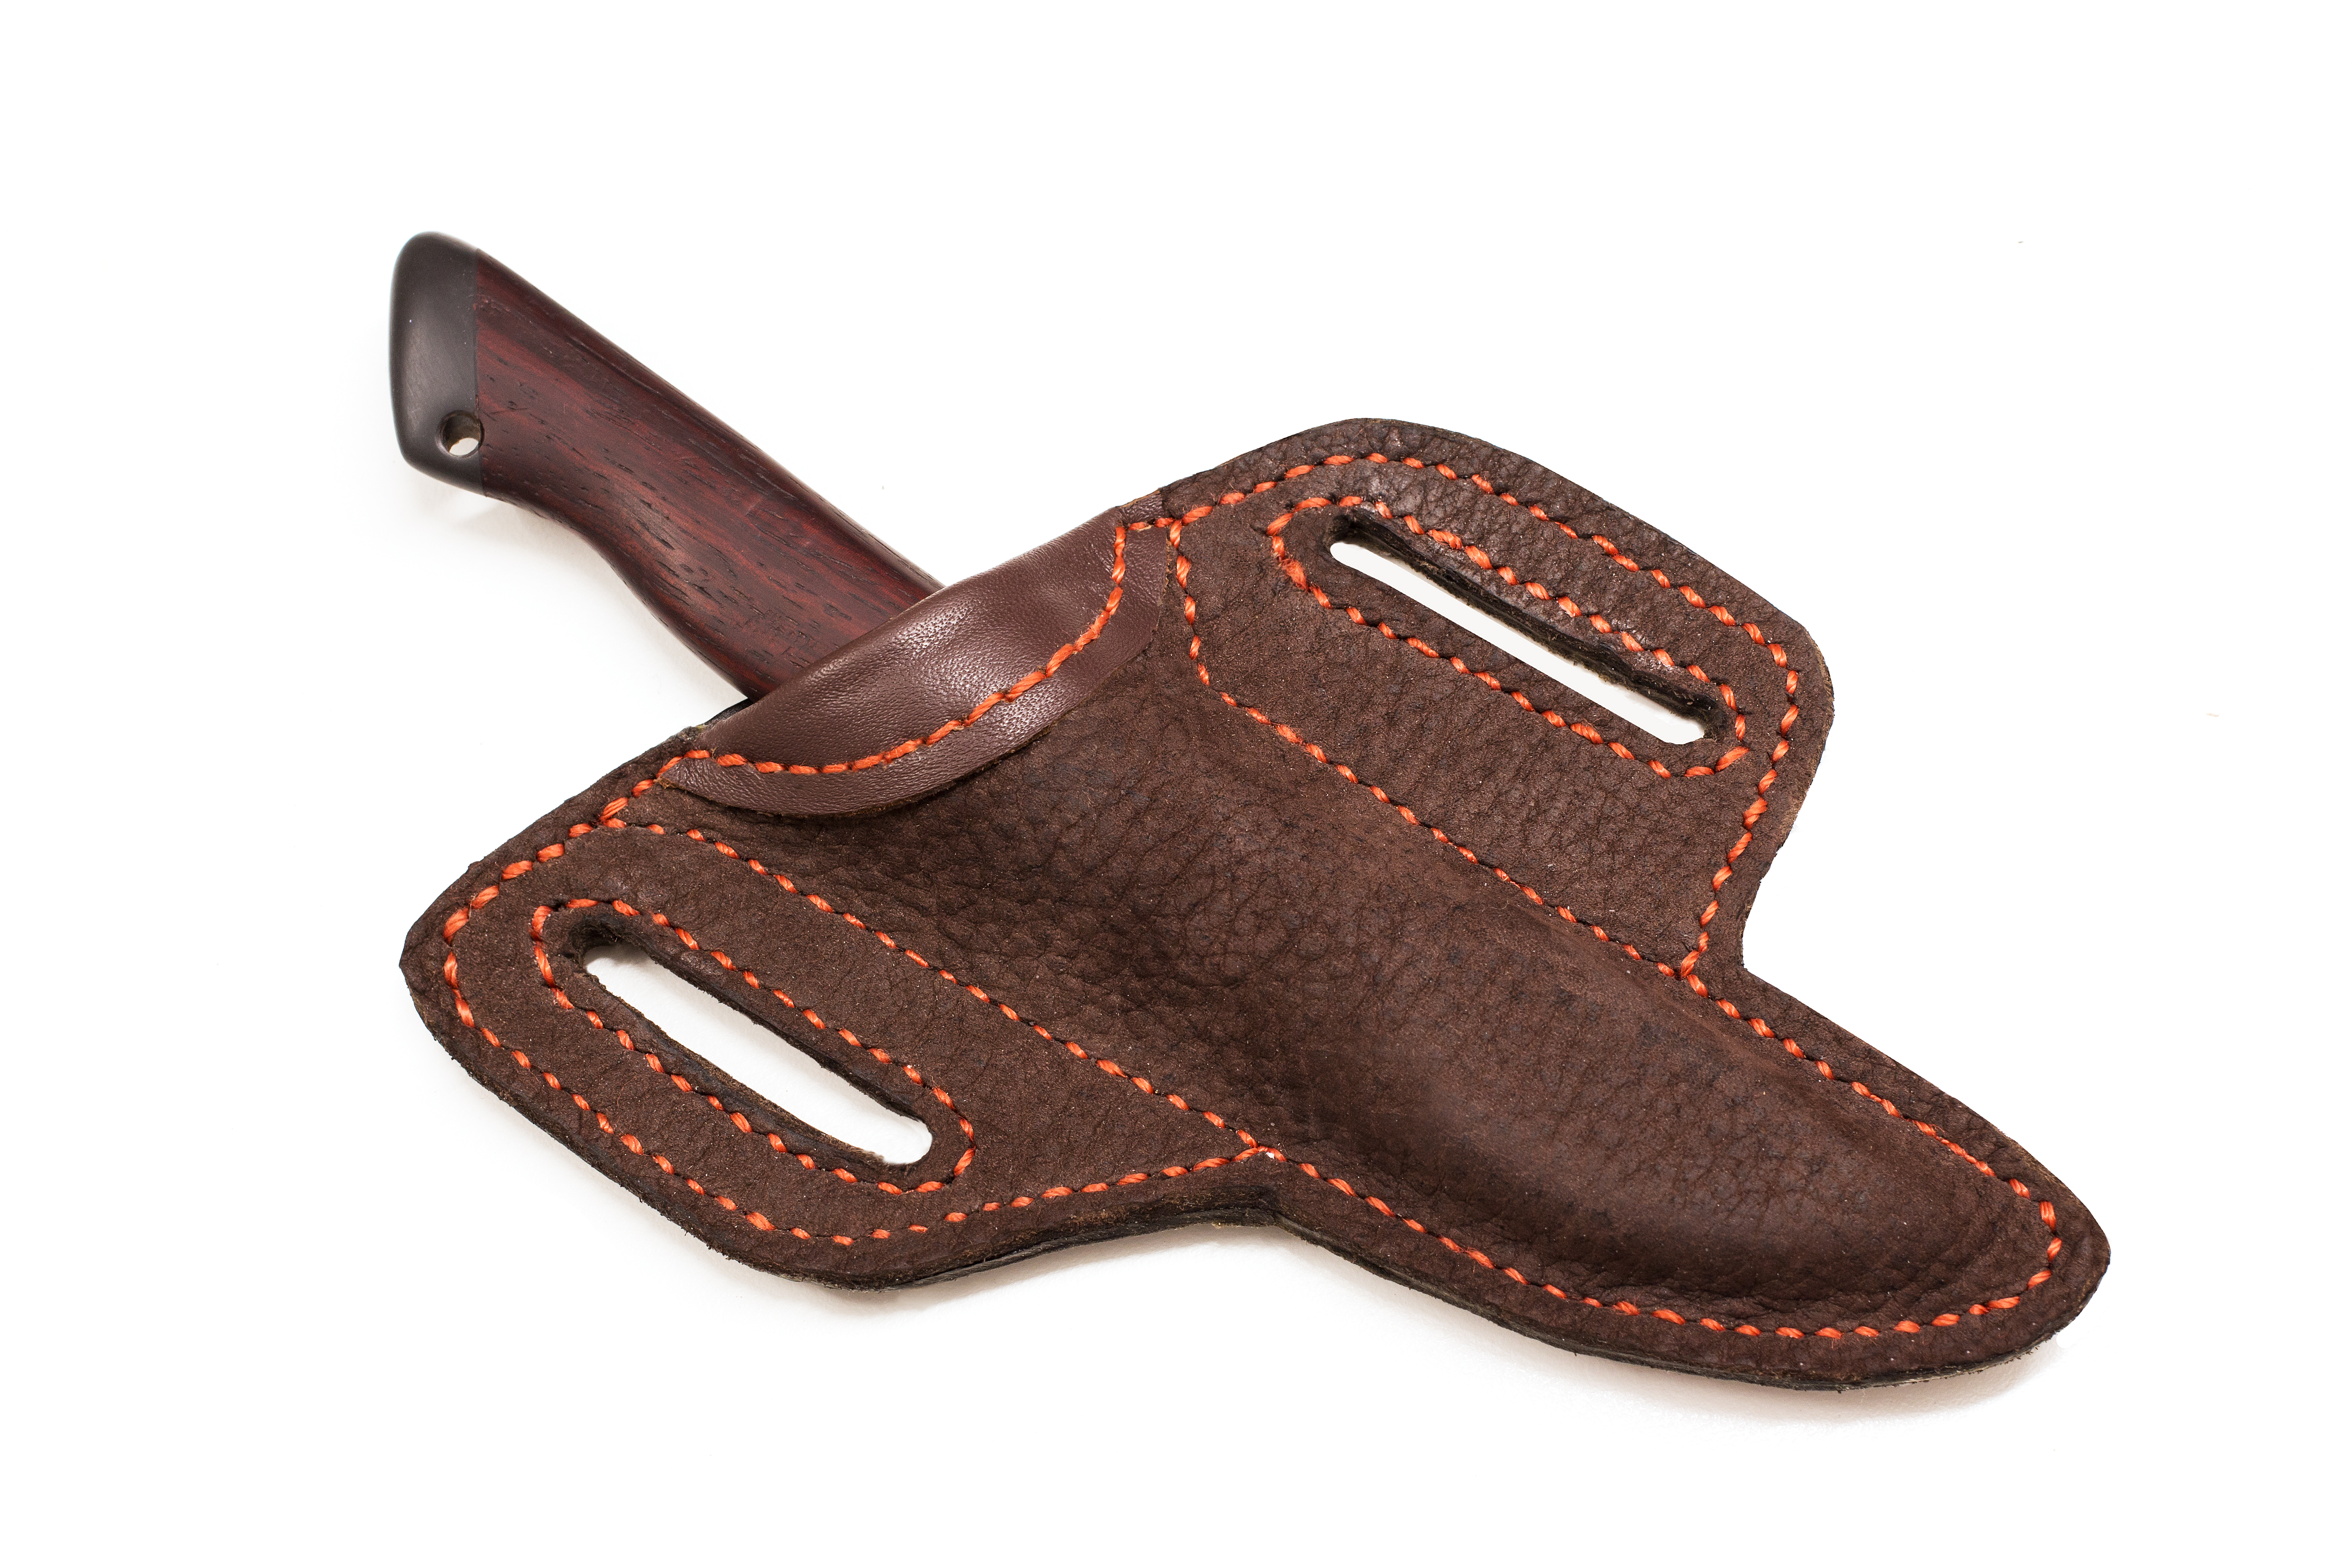 Picture of Buffalo Leather Sheath for a Carving Knife